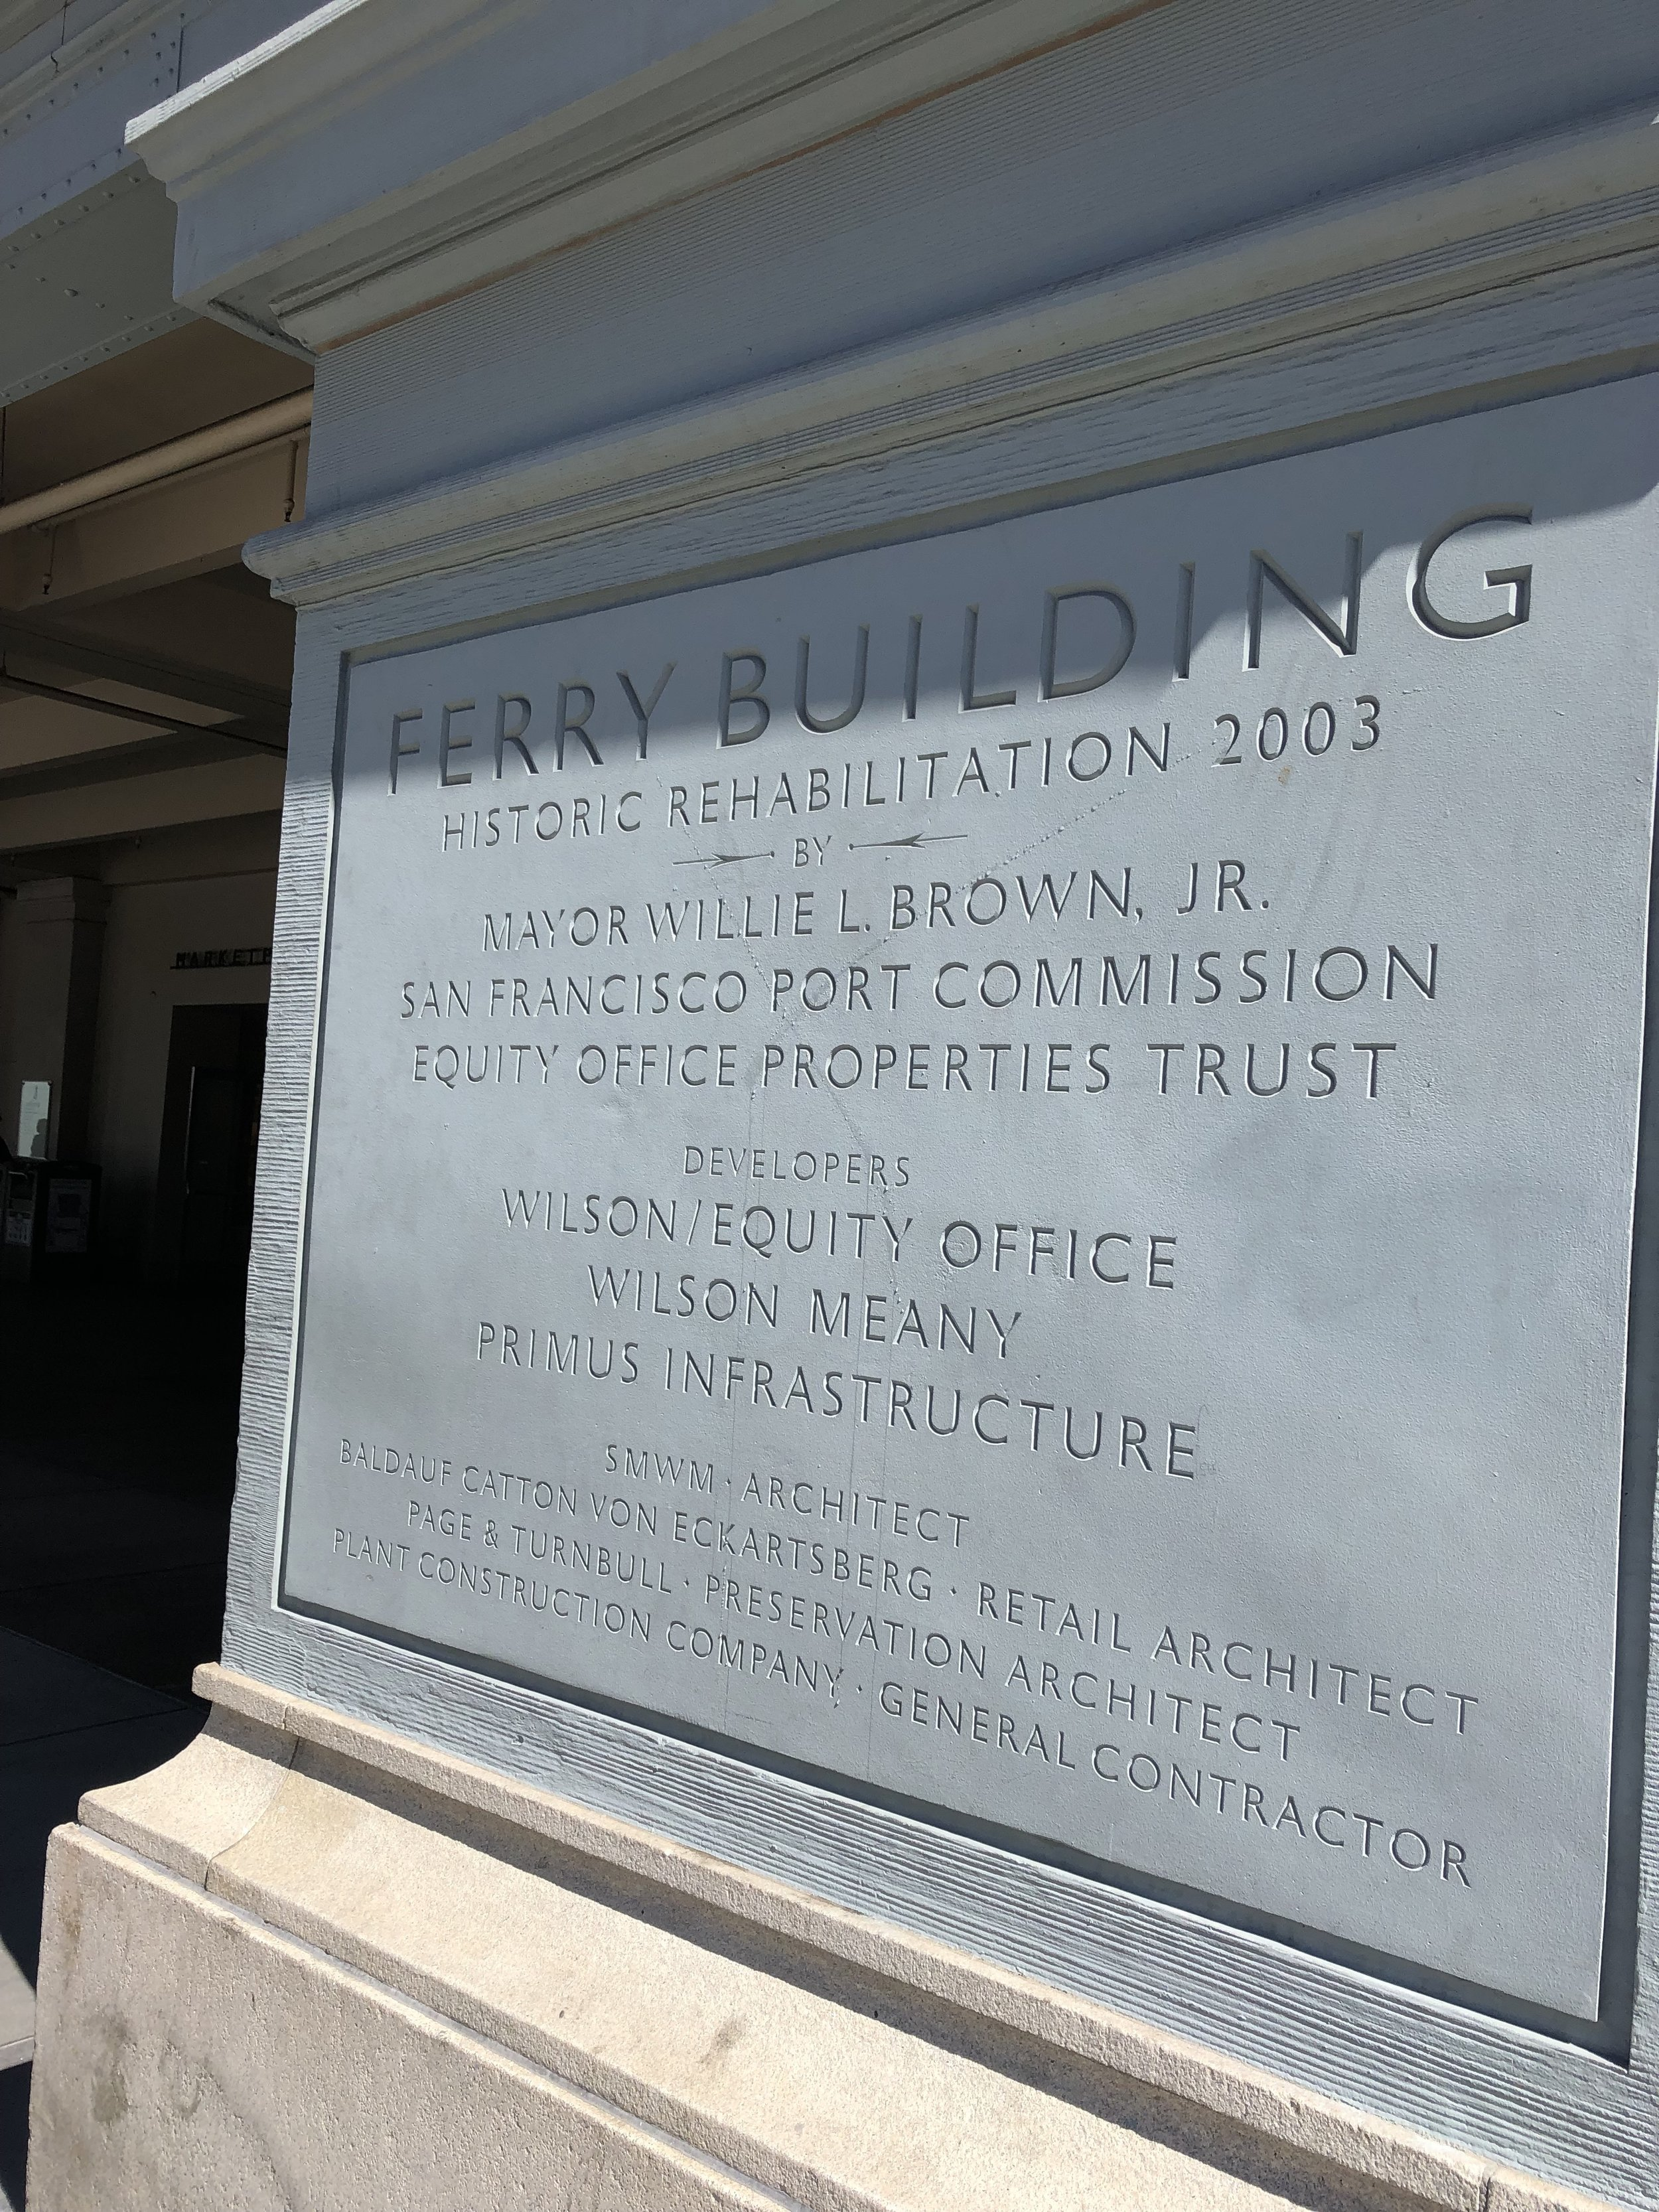 The Ferry Building memorial in San Francisco